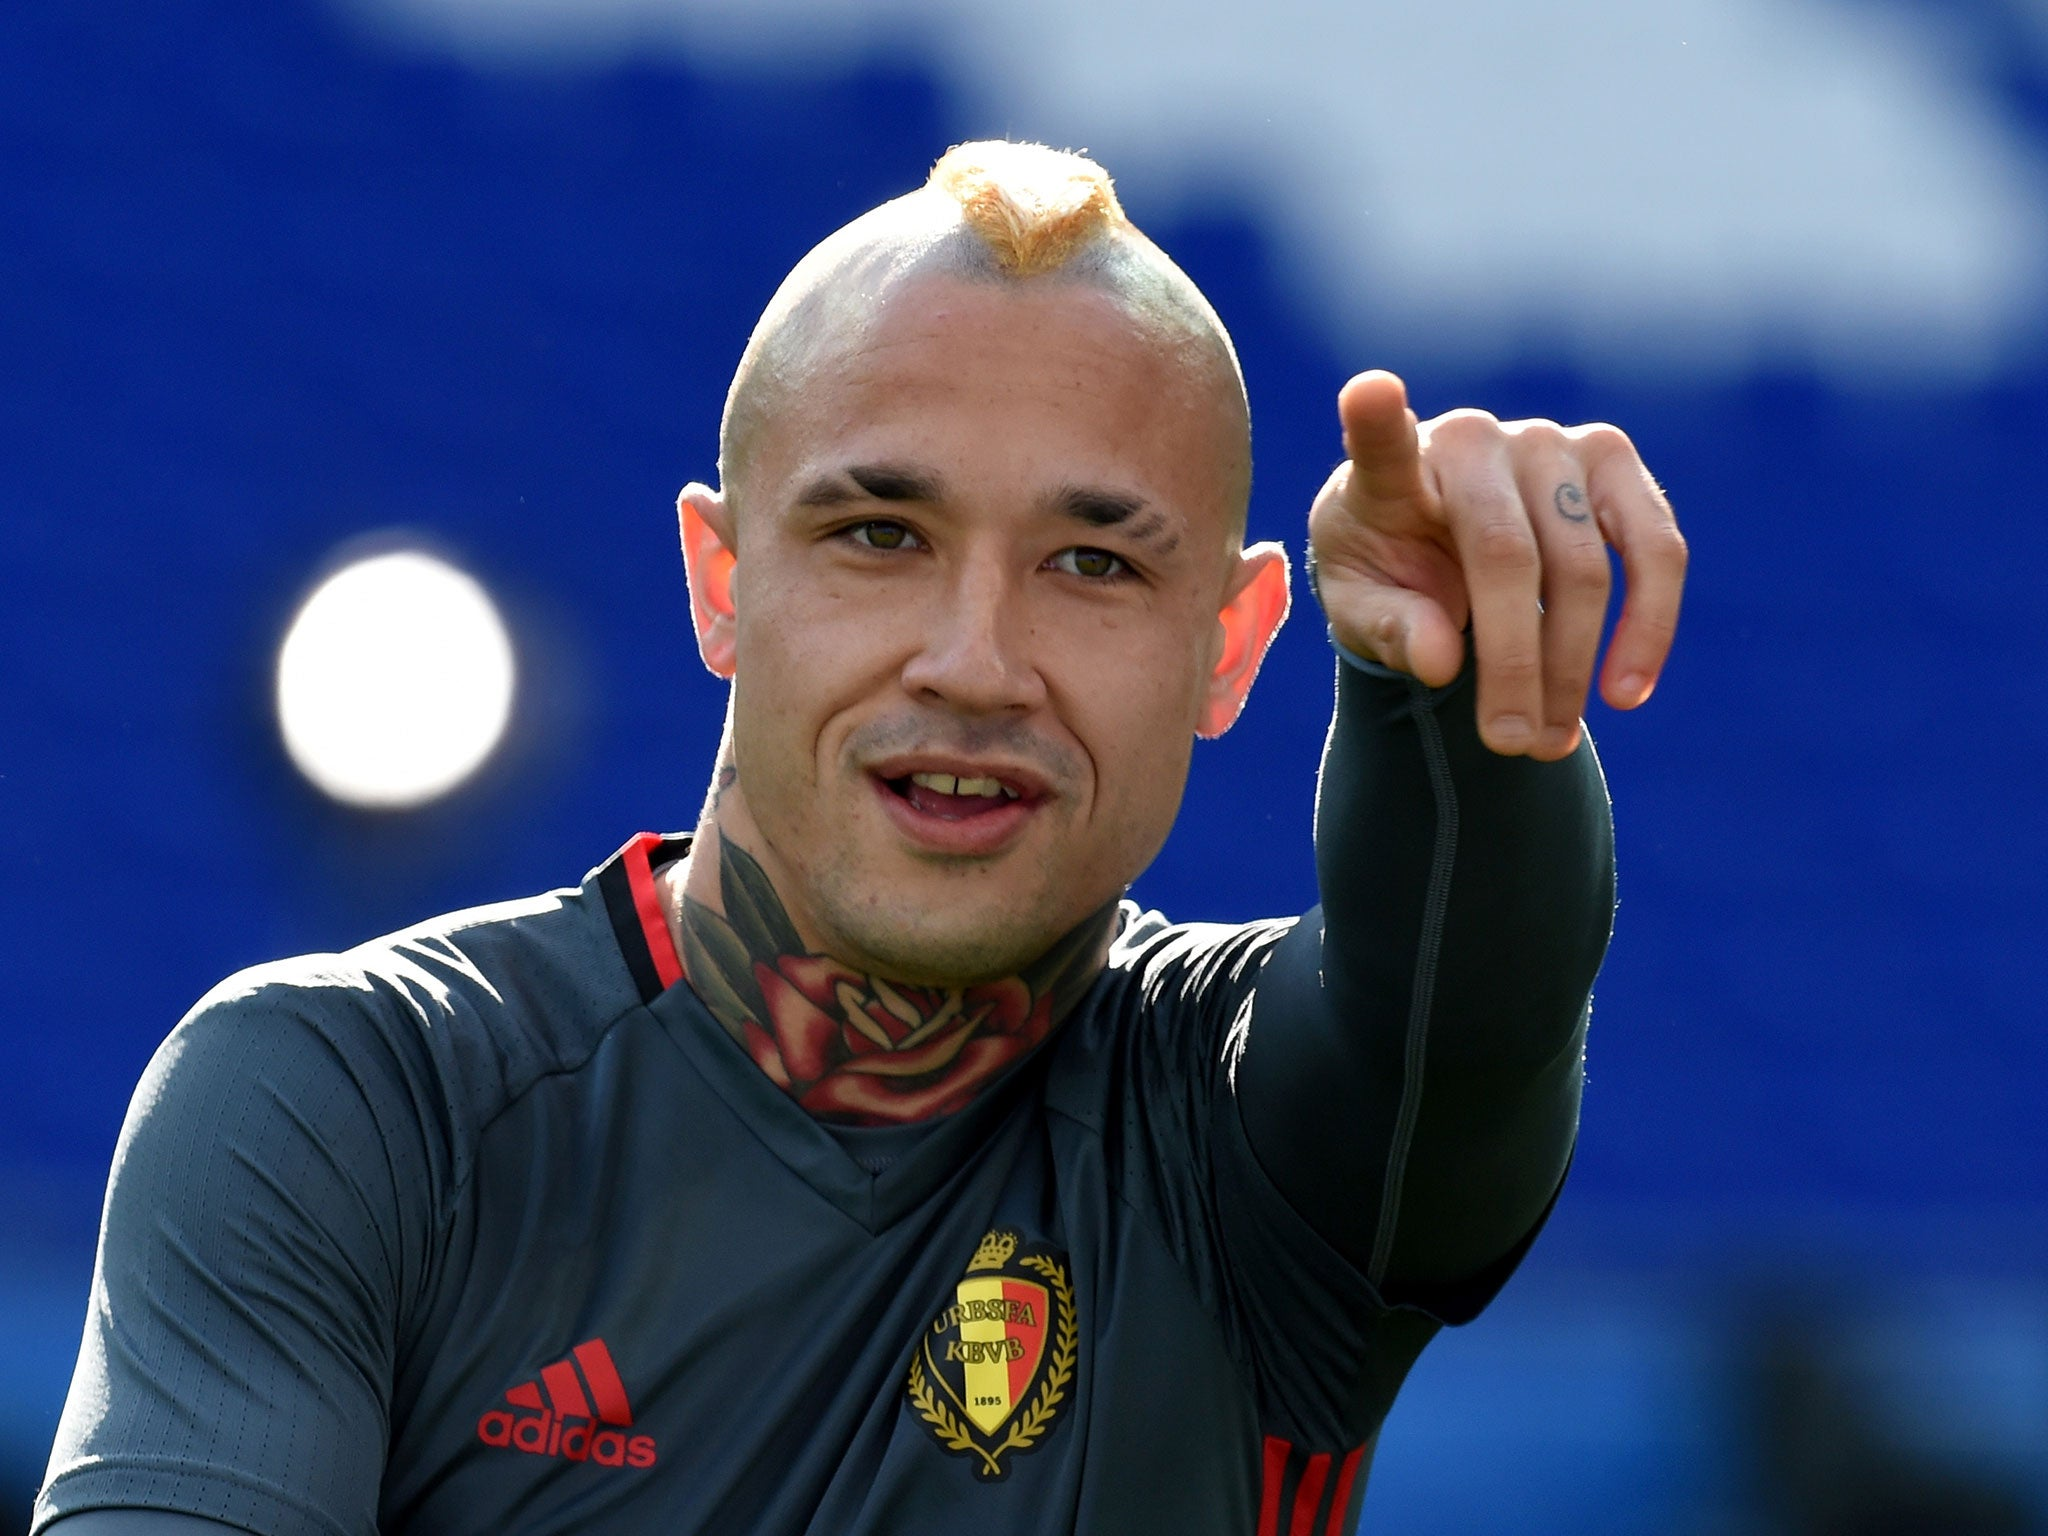 Radja Nainggolan to Chelsea Eden Hazard and Thibaut Courtois want